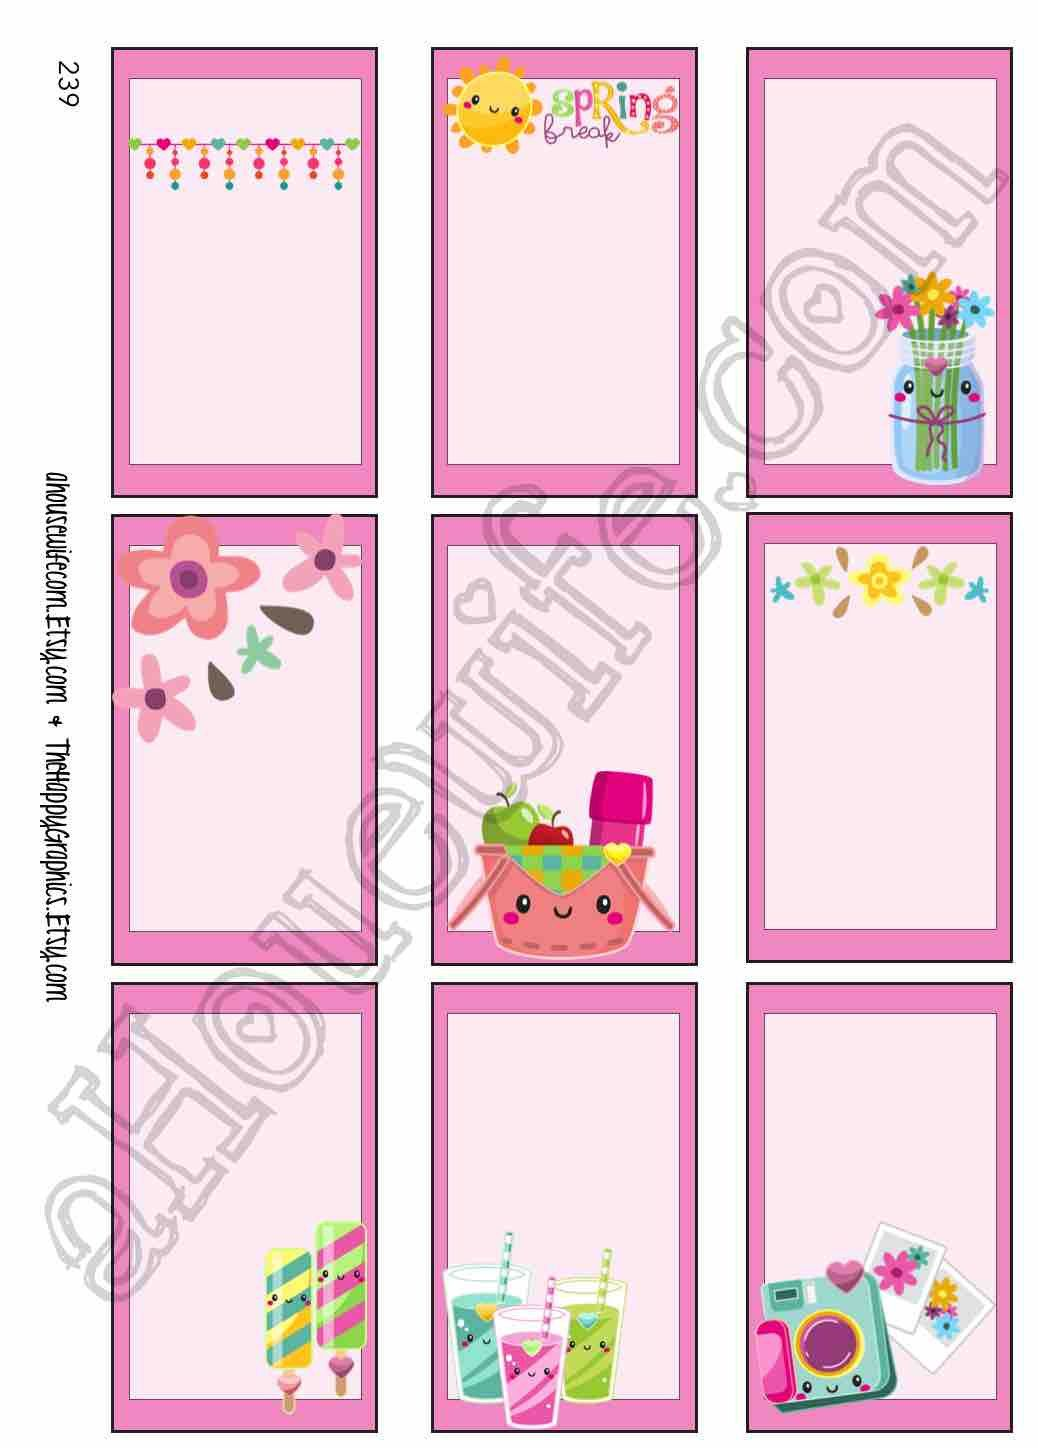 Spring picnic happy planner stickers full box a pdf